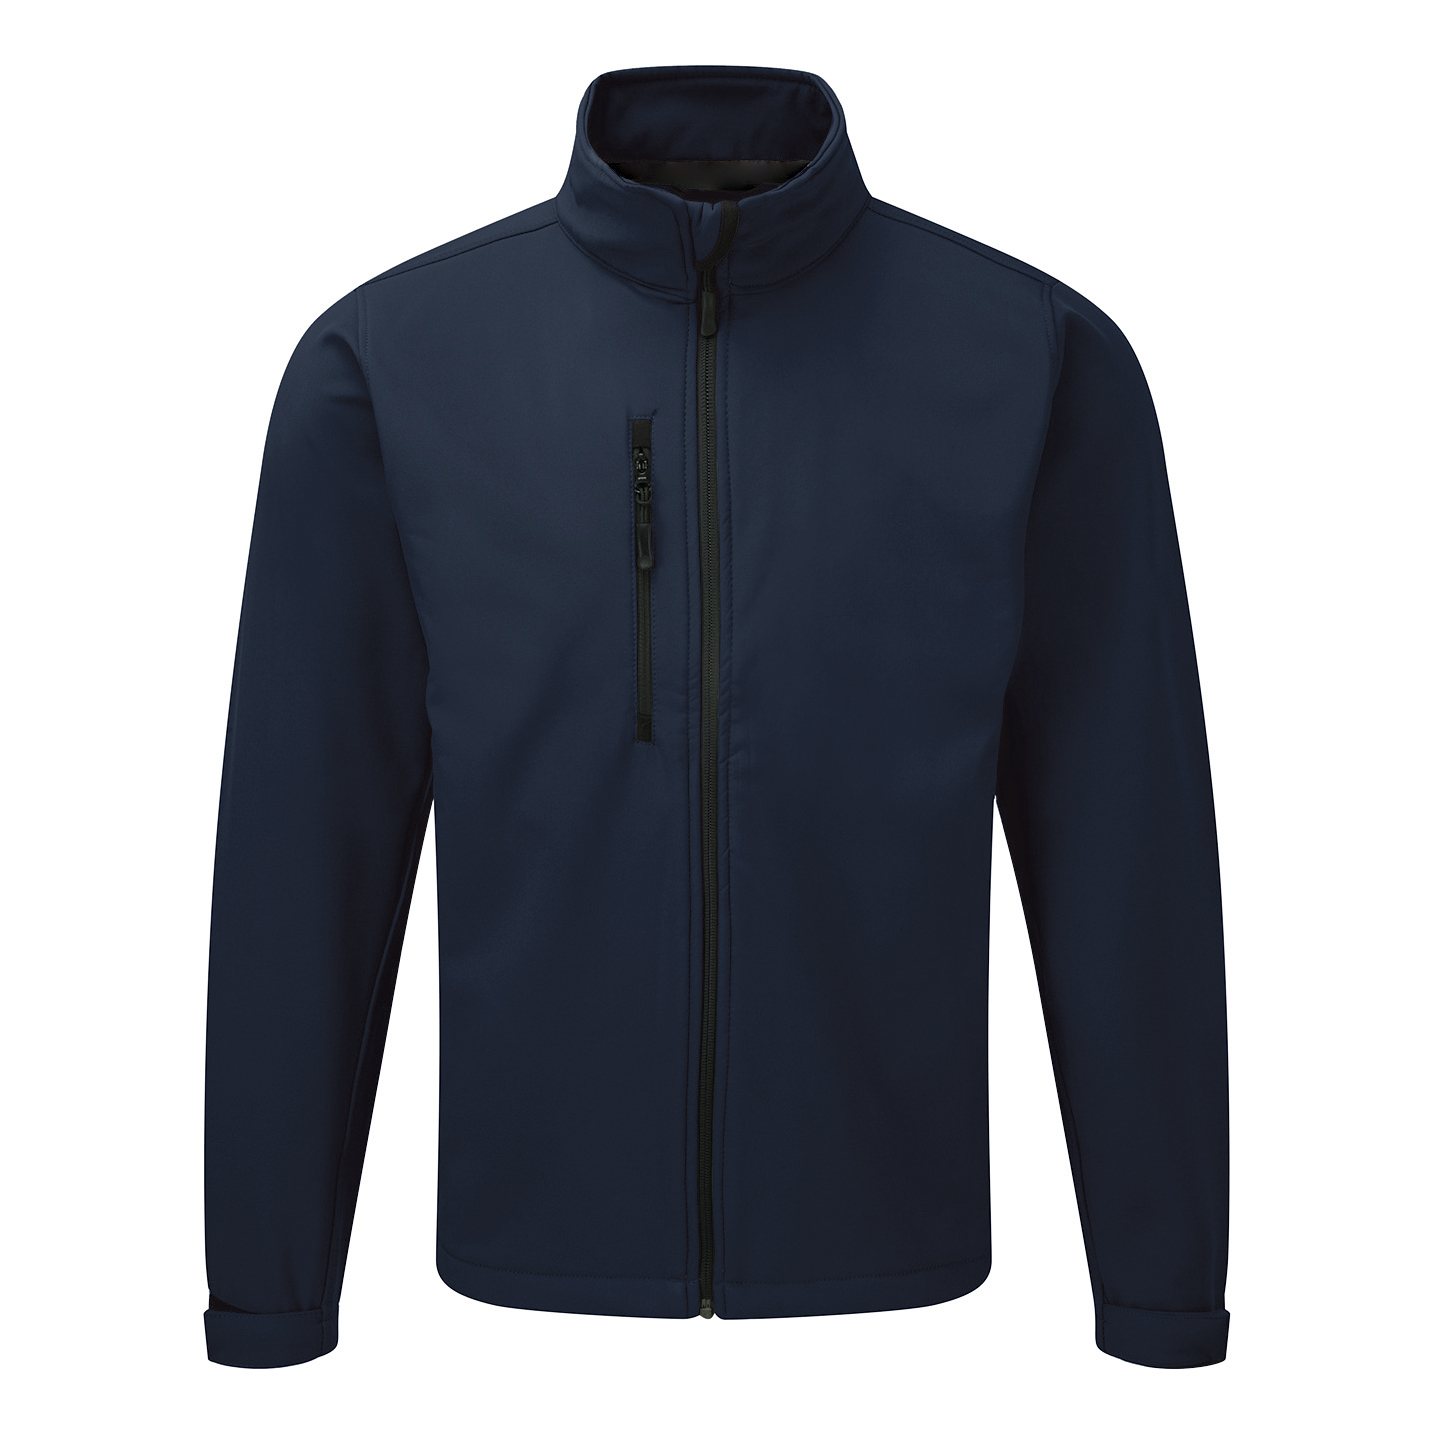 Jacket Soft Shell Water Resistant Breathable 320gsm Medium Navy Blue